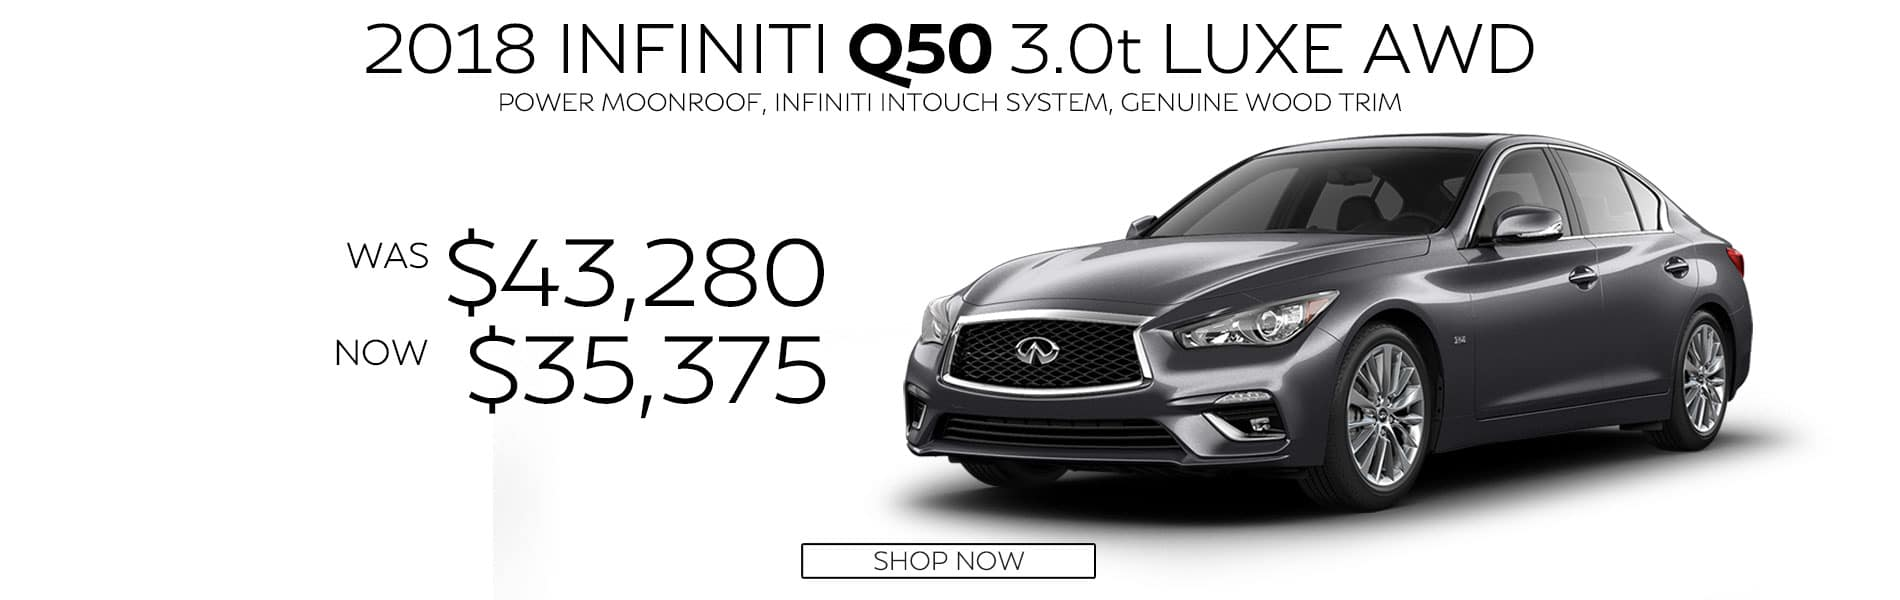 Purchase a 2018 INFINITI Q50 3.0t LUXE AWD for $35,375. Original Price was $43,280.